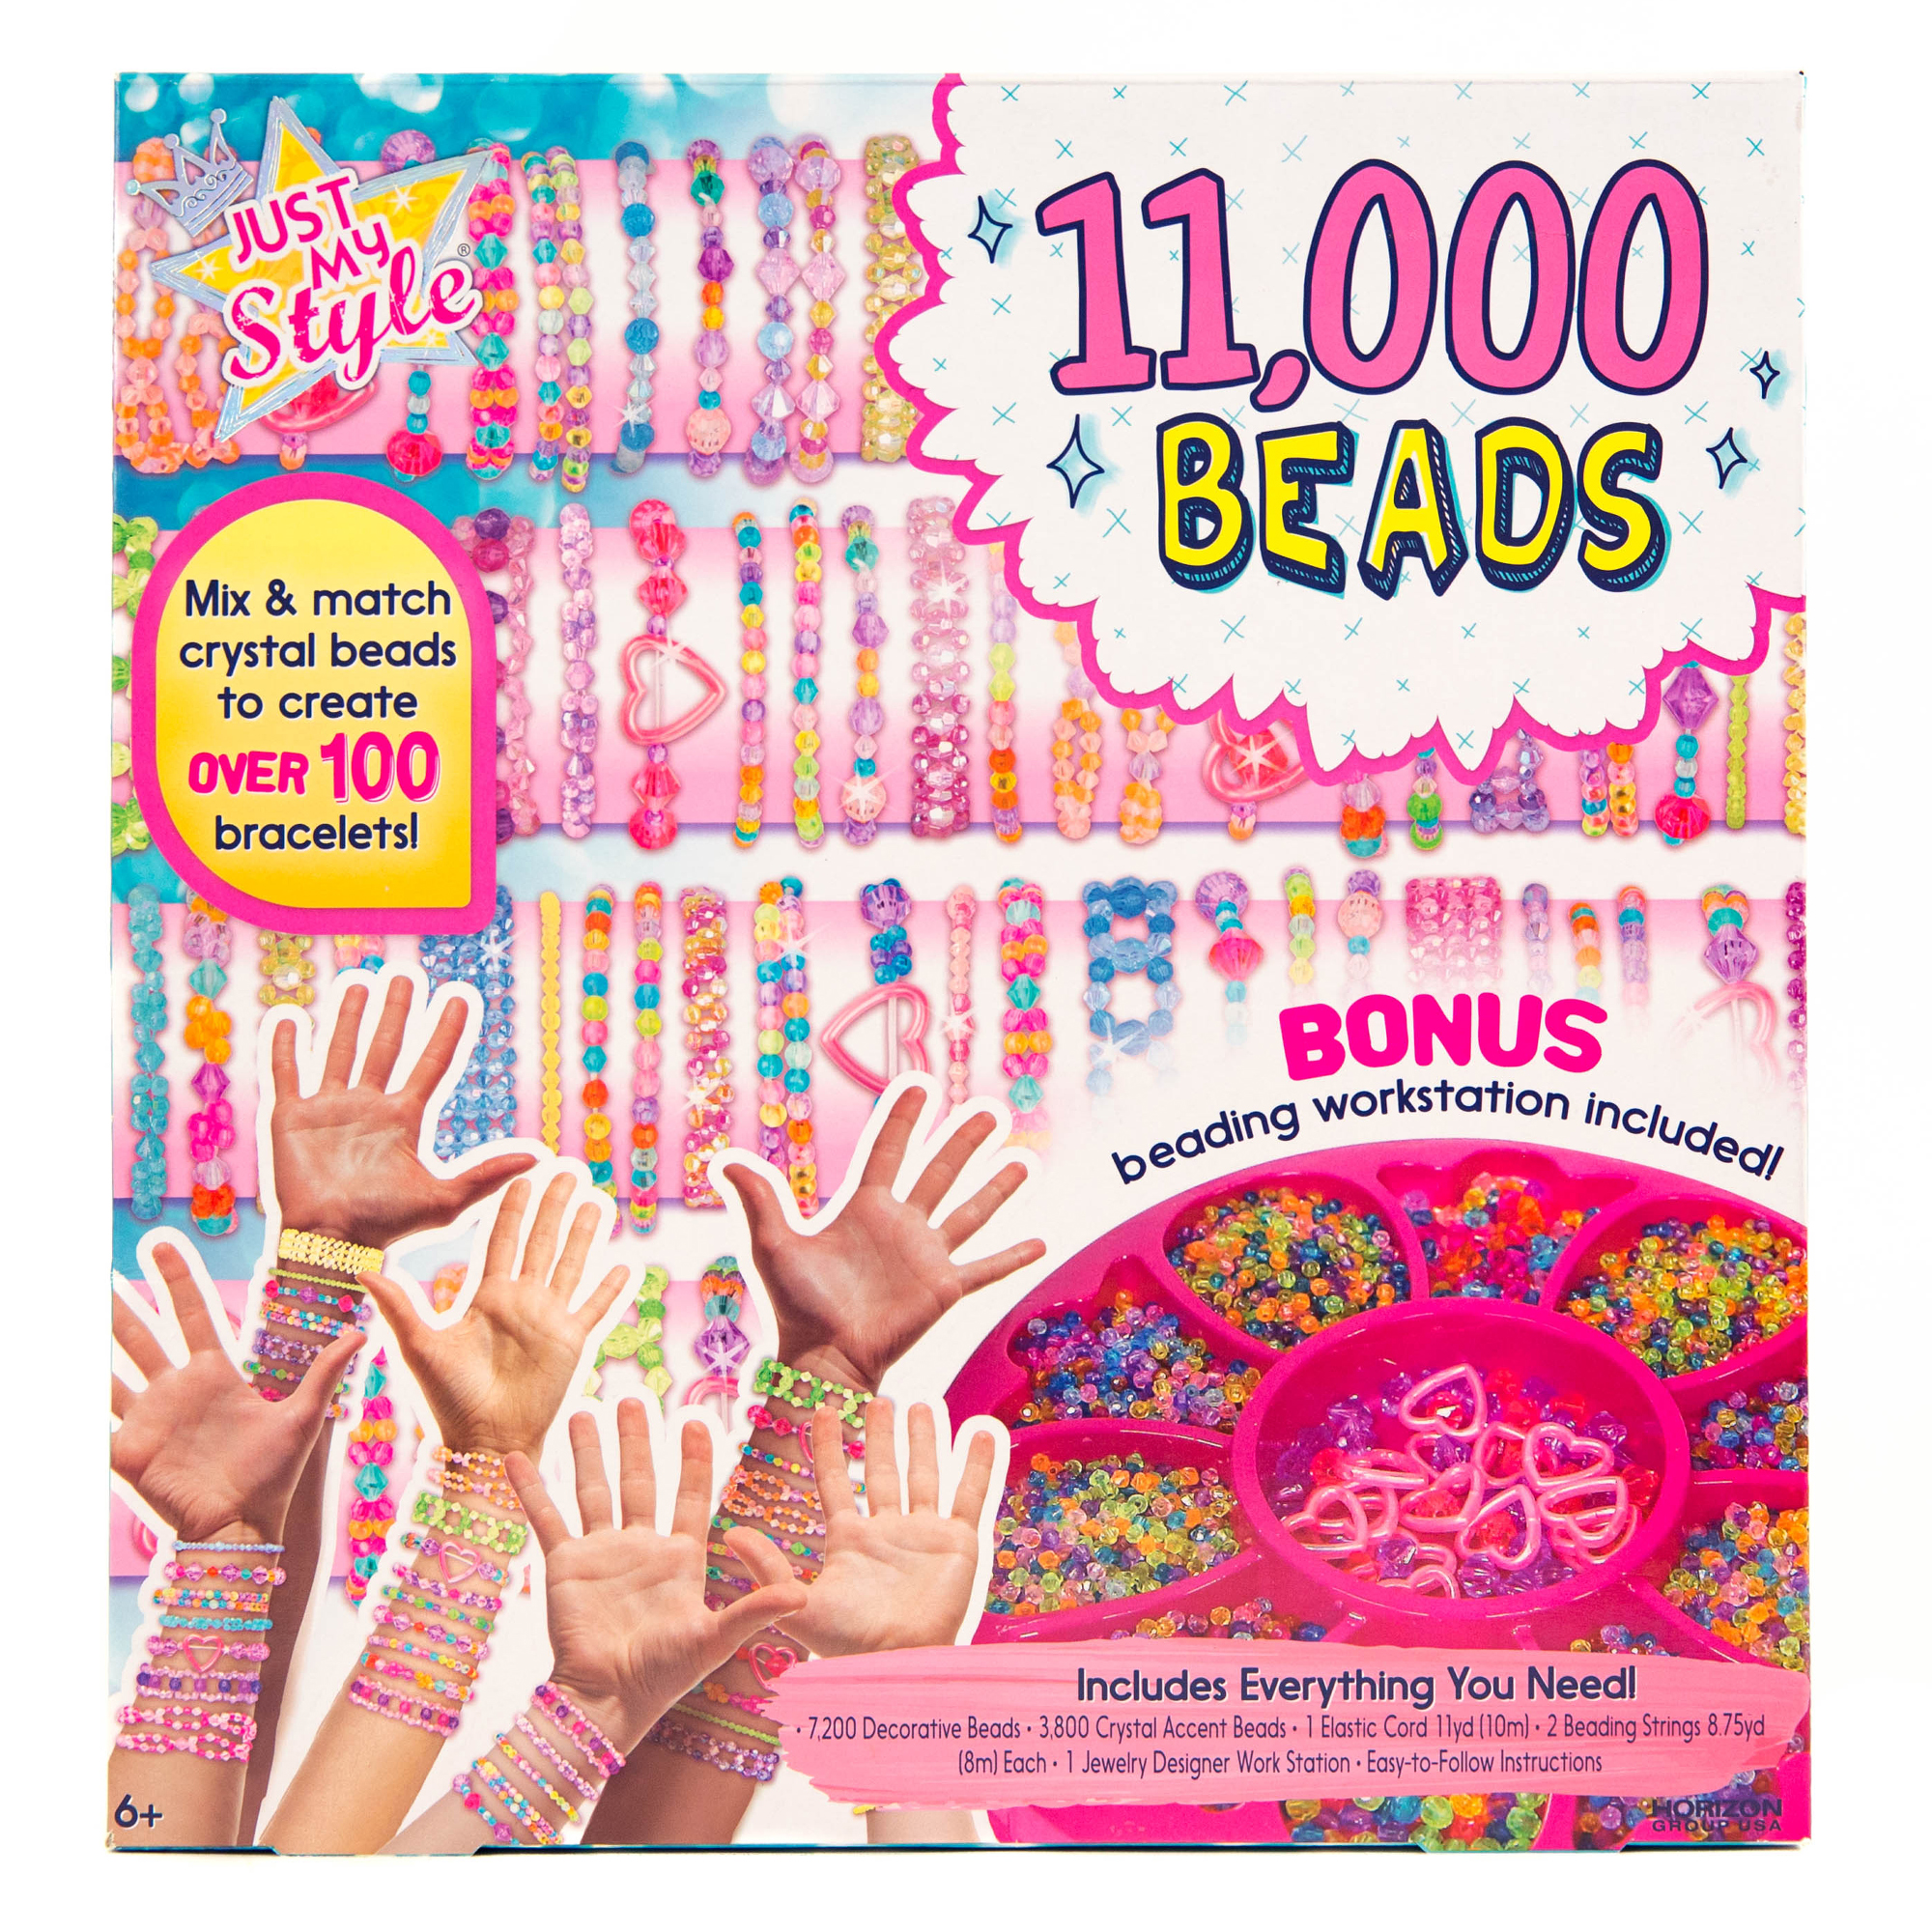 Just My Style 11,000 Beads Bracelet Kit by Horizon Group USA